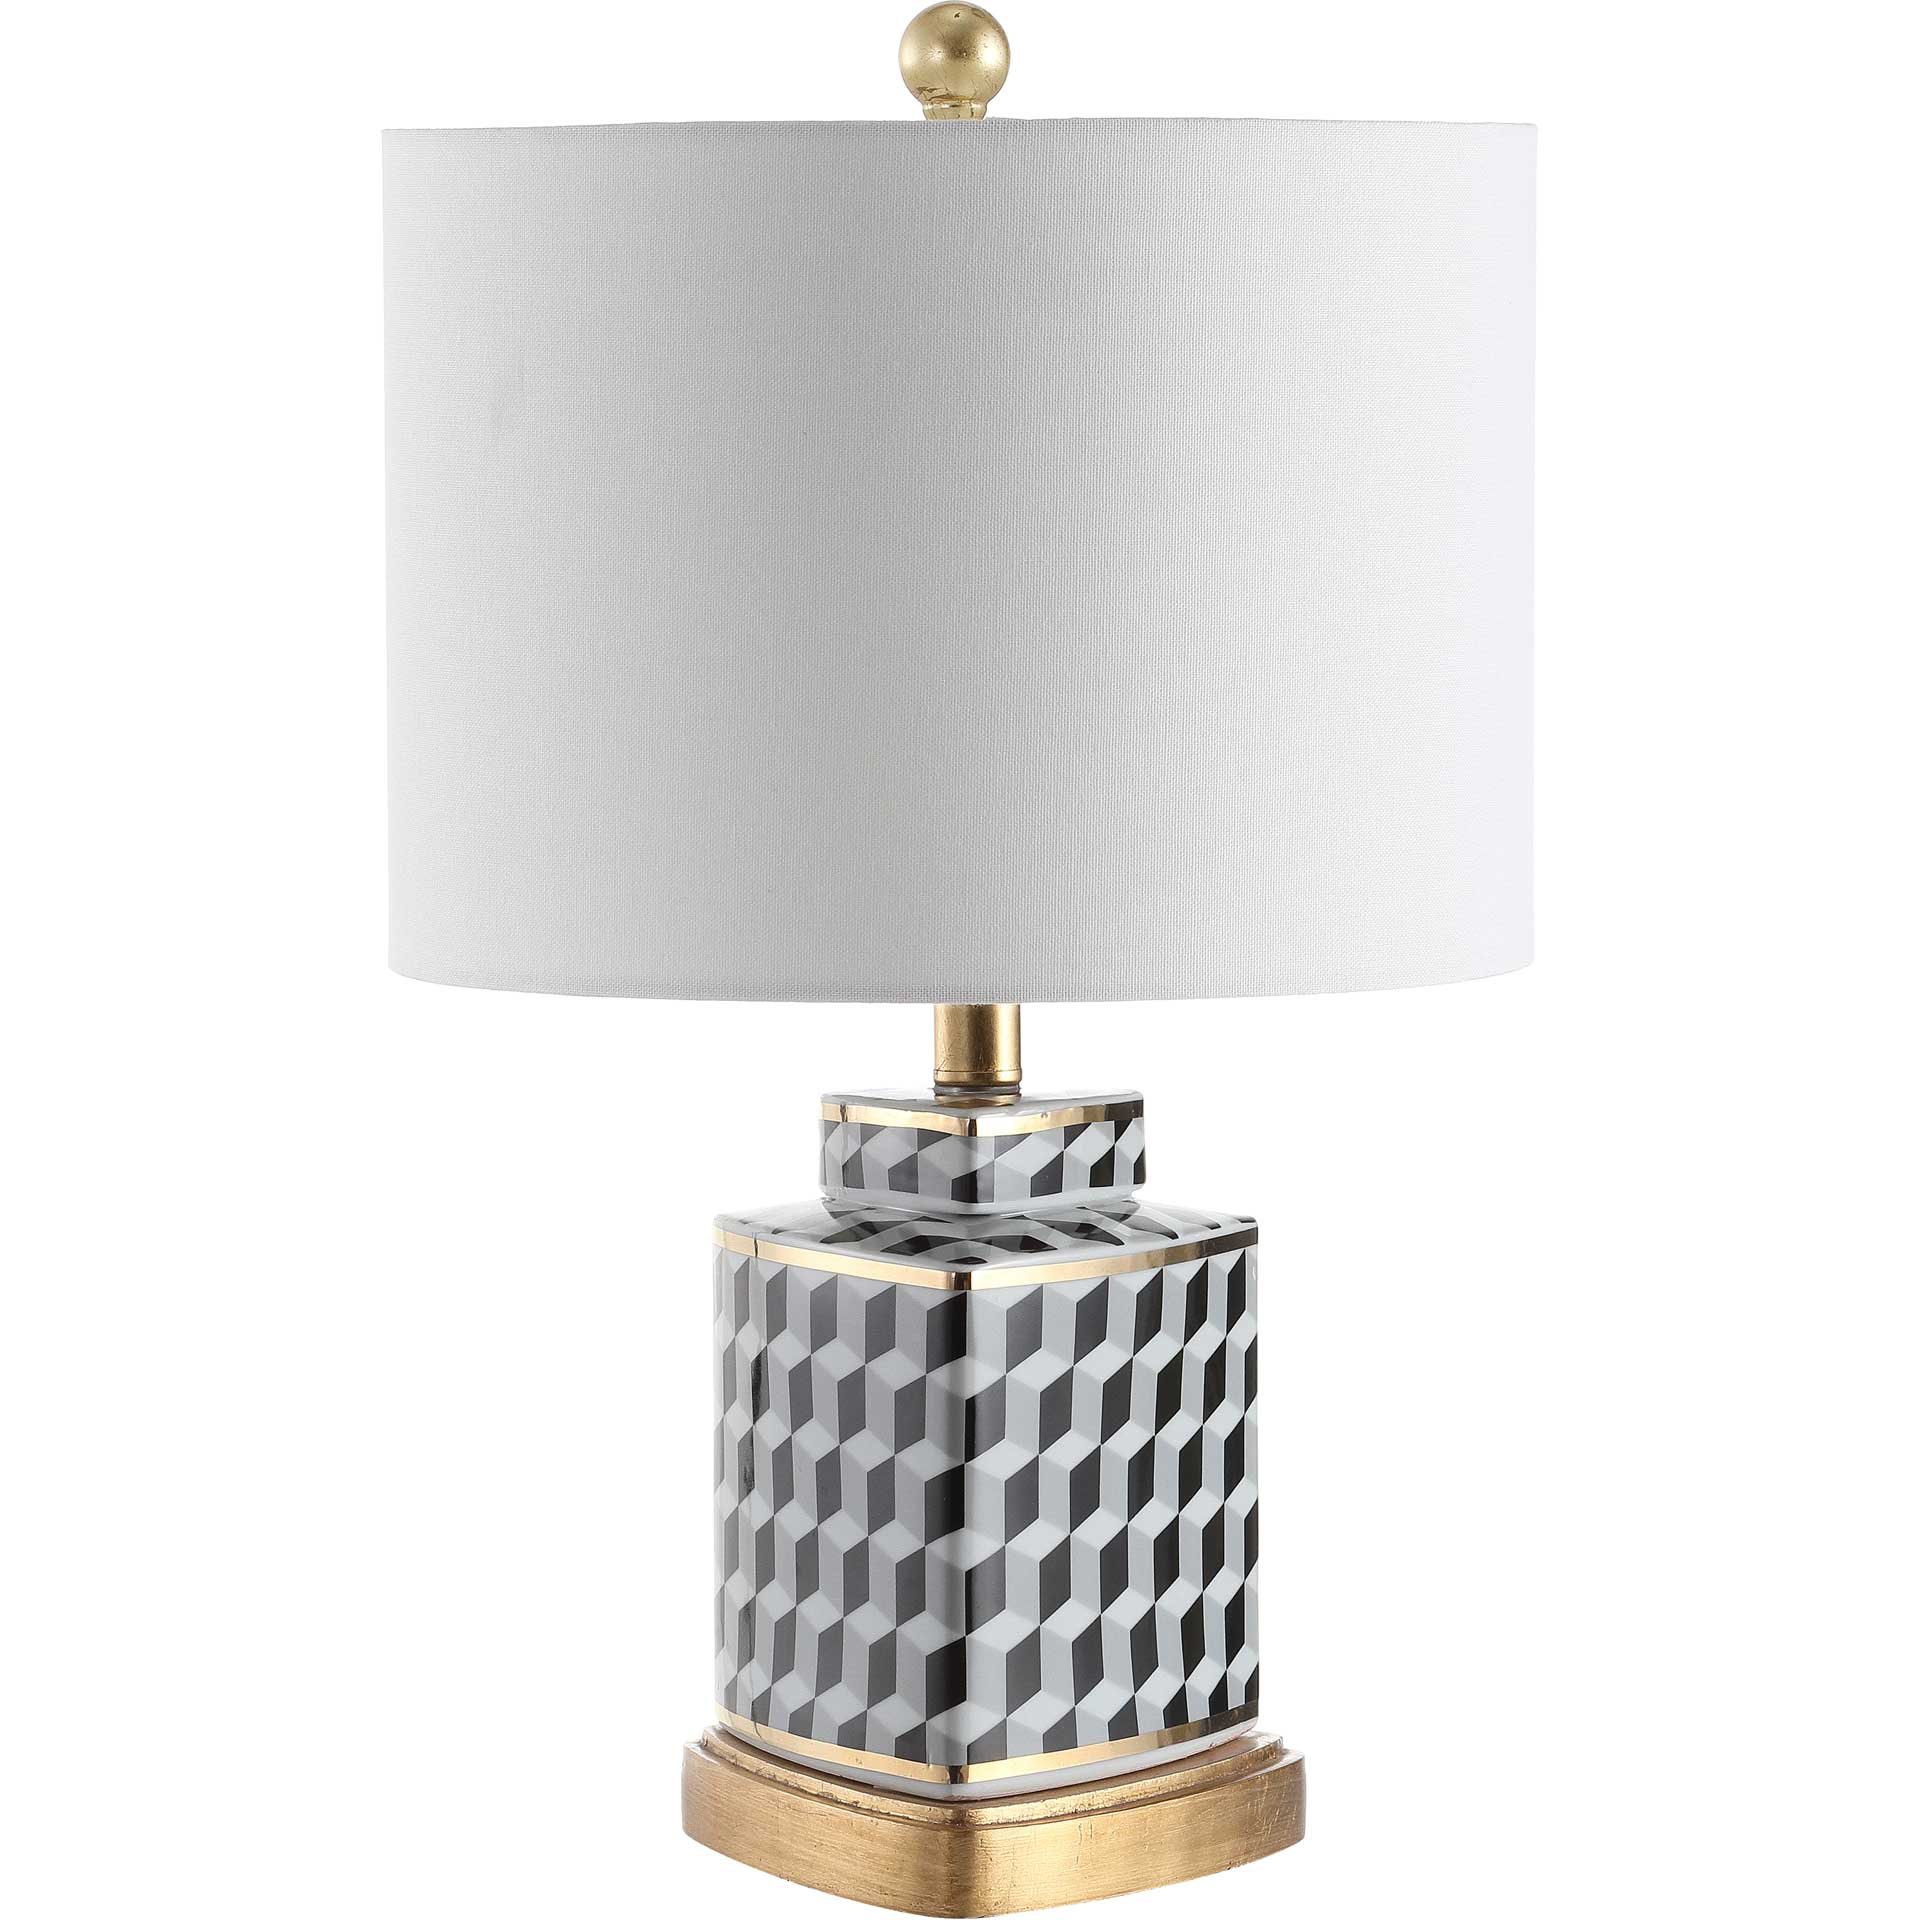 Alexis Table Lamp Black/White